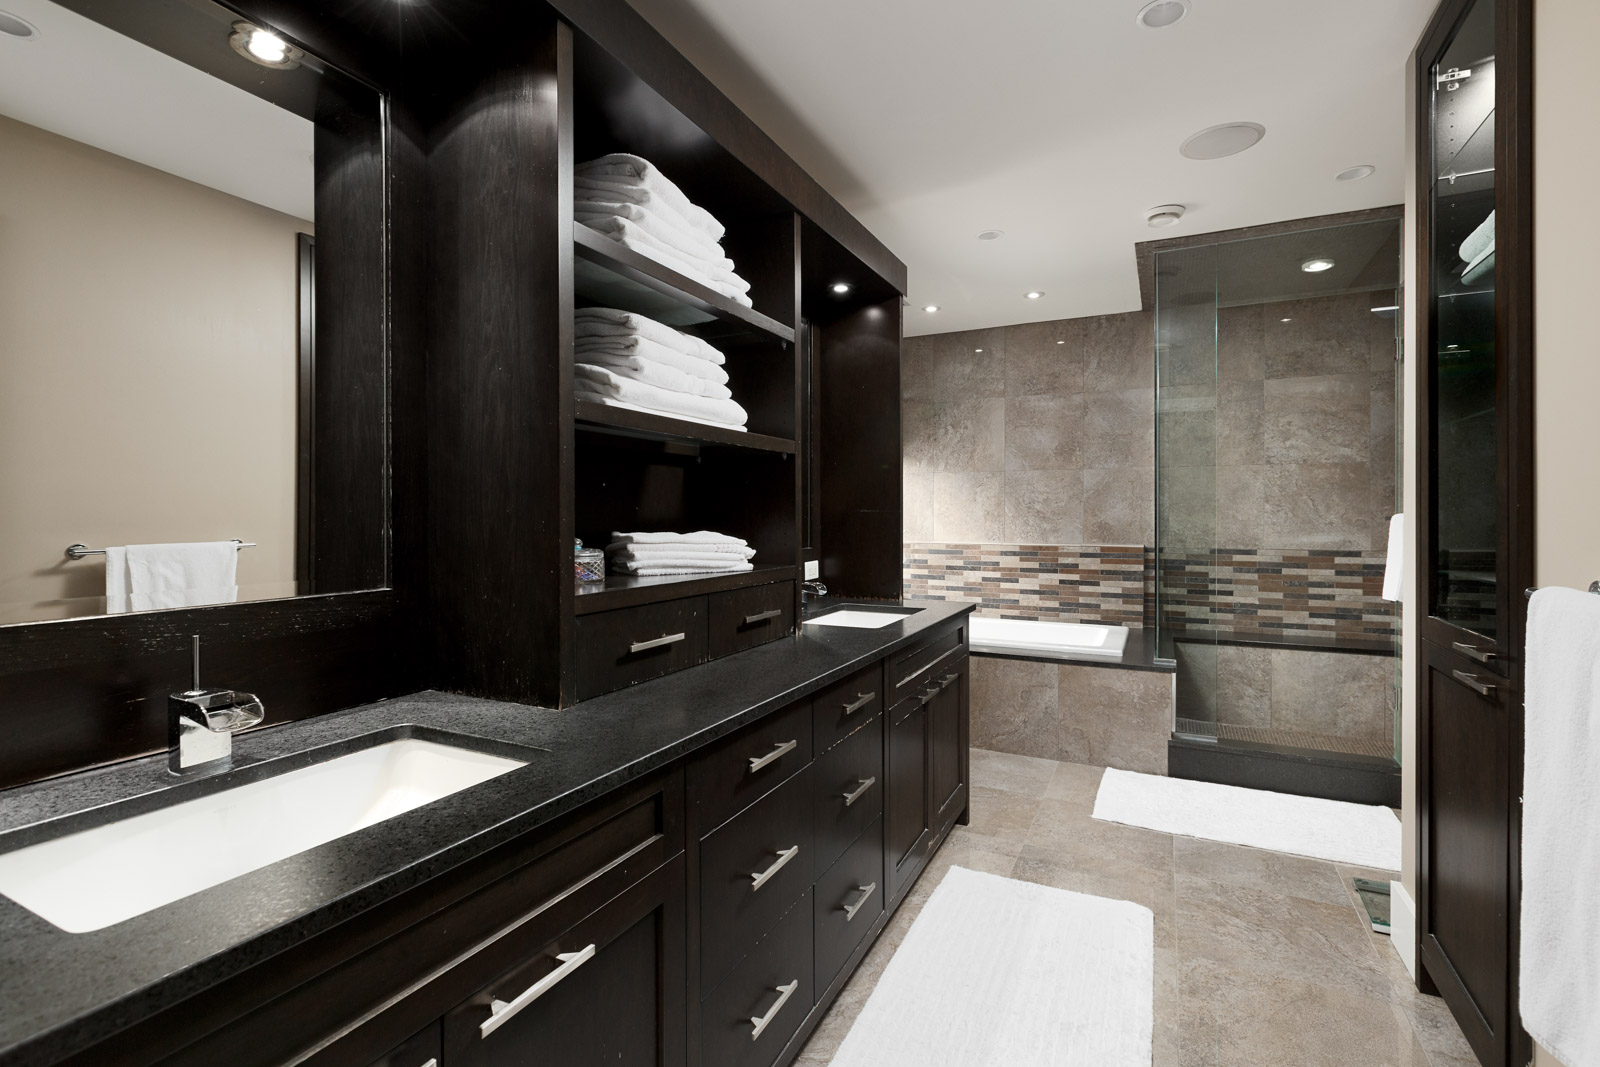 Bathroom with dark wood cabinetry